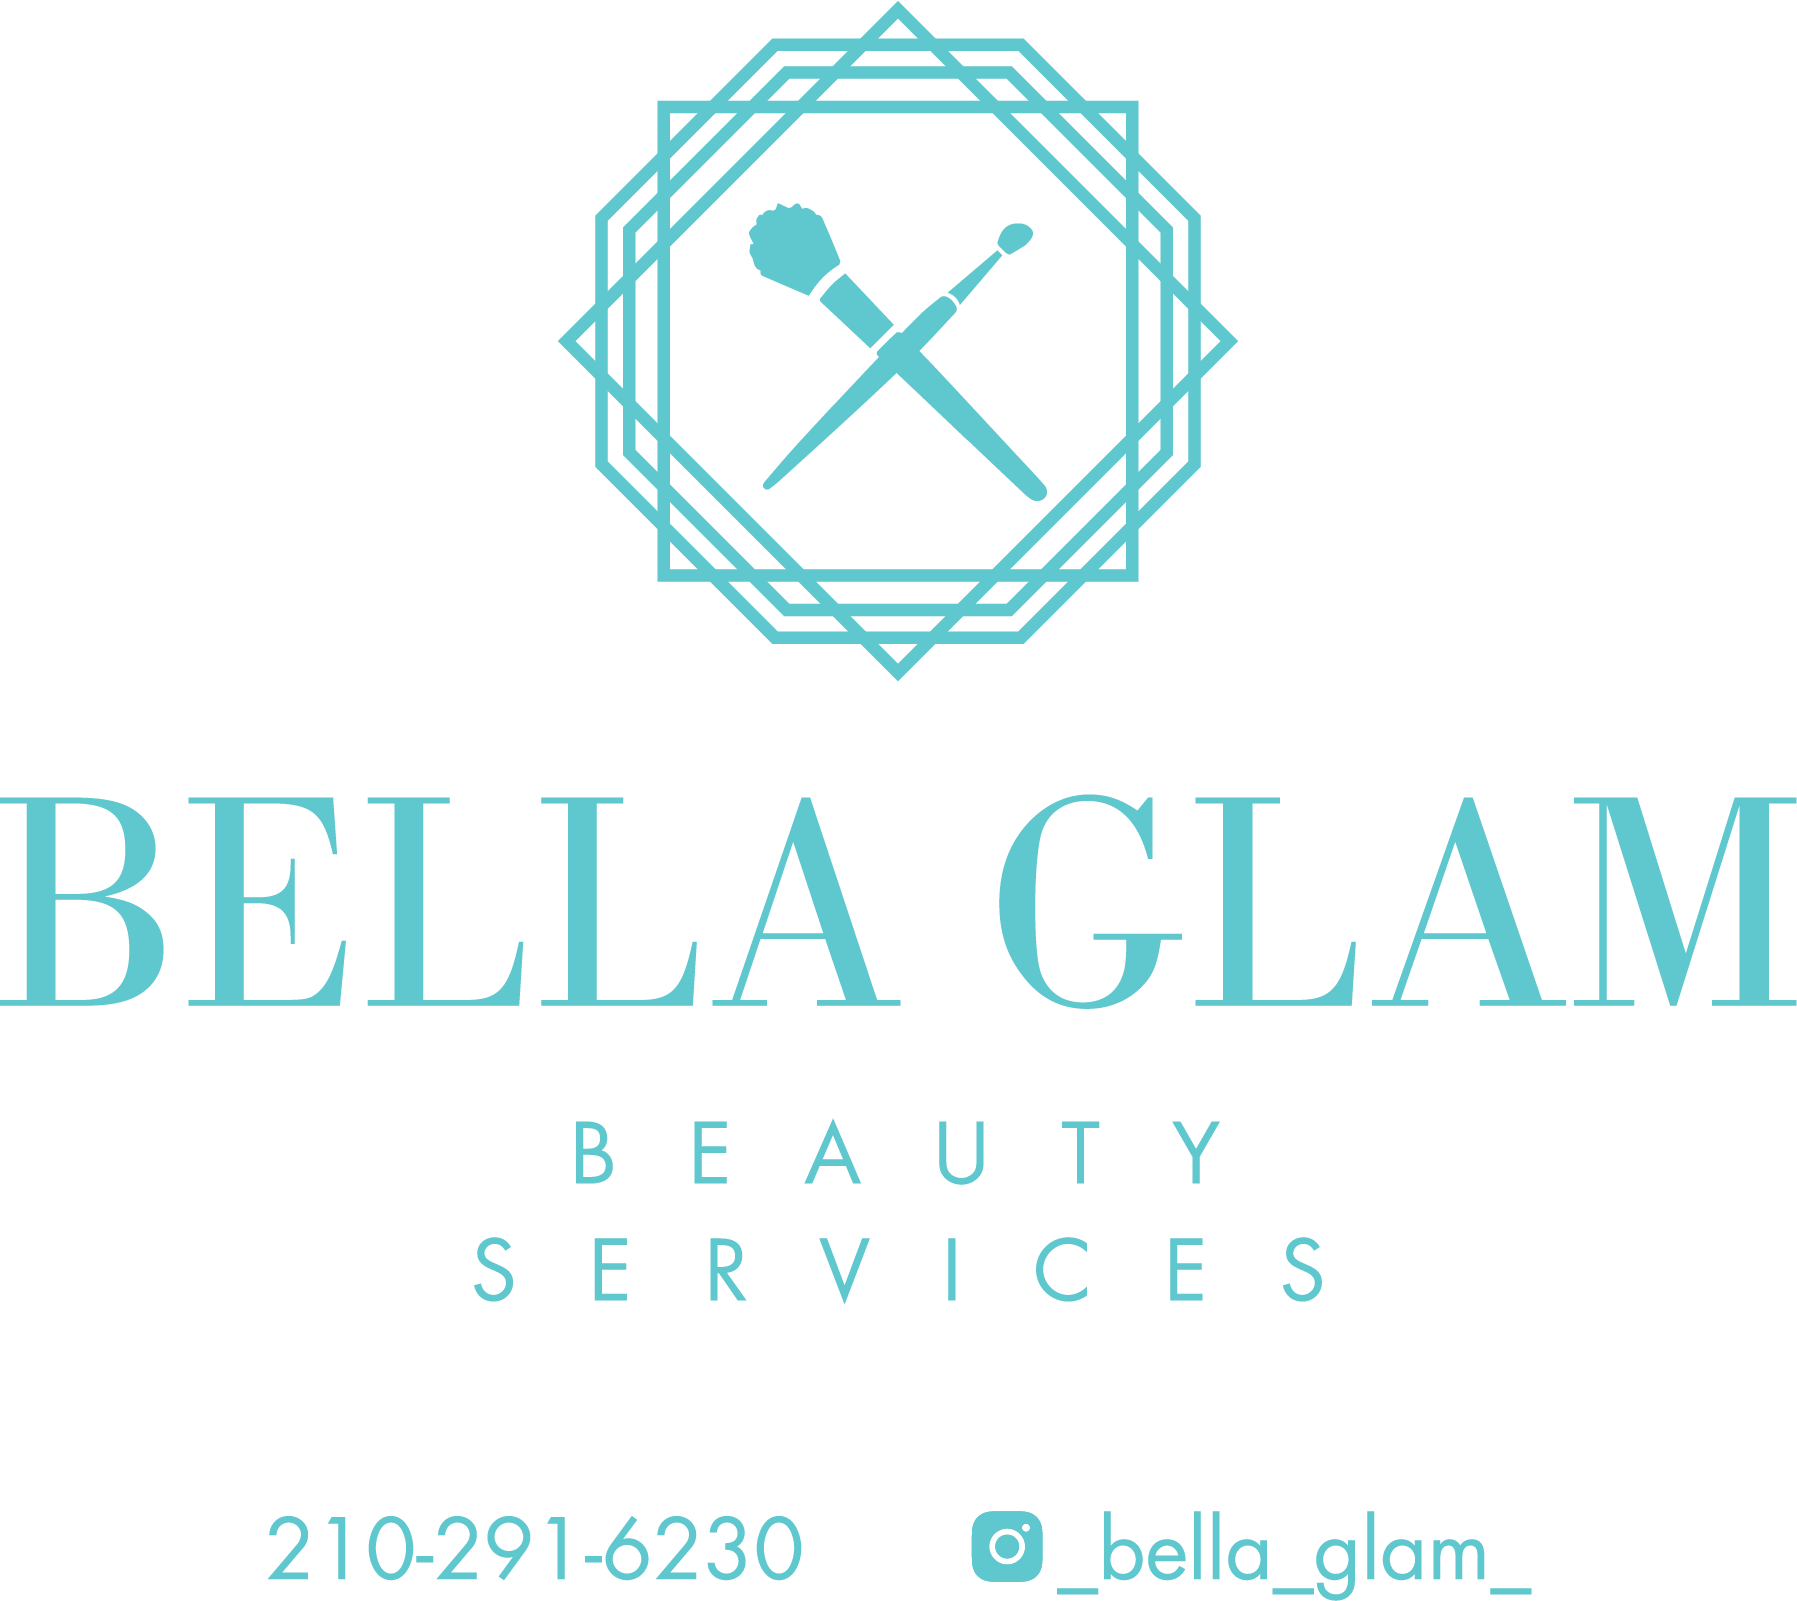 Bella Glam